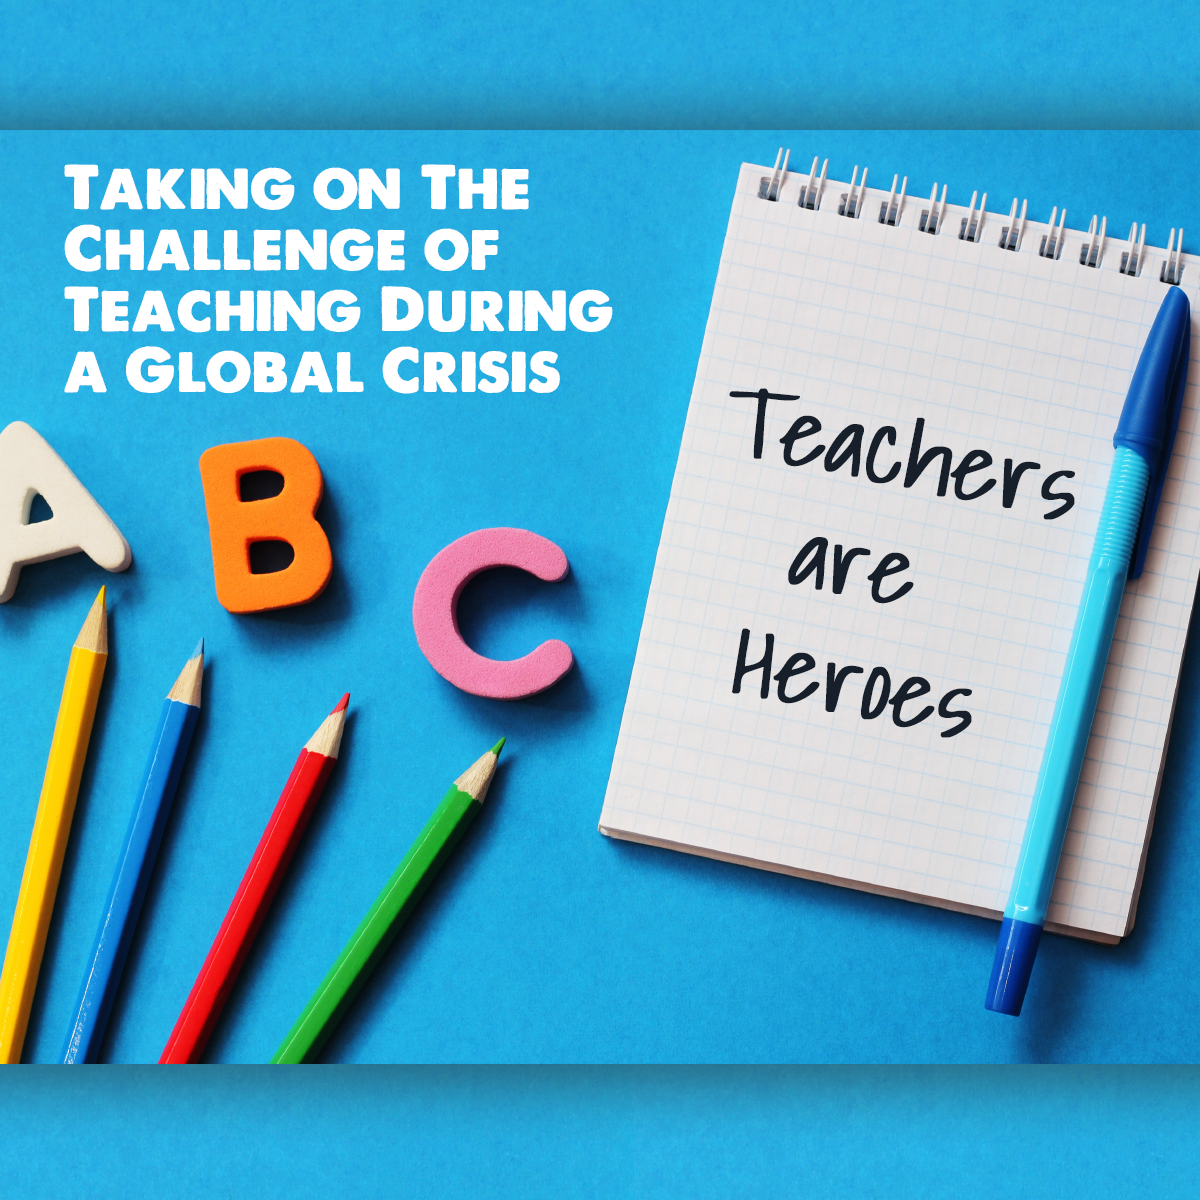 Teachers Are Heroes - Taking on The Challenge of Teaching During a Global Crisis